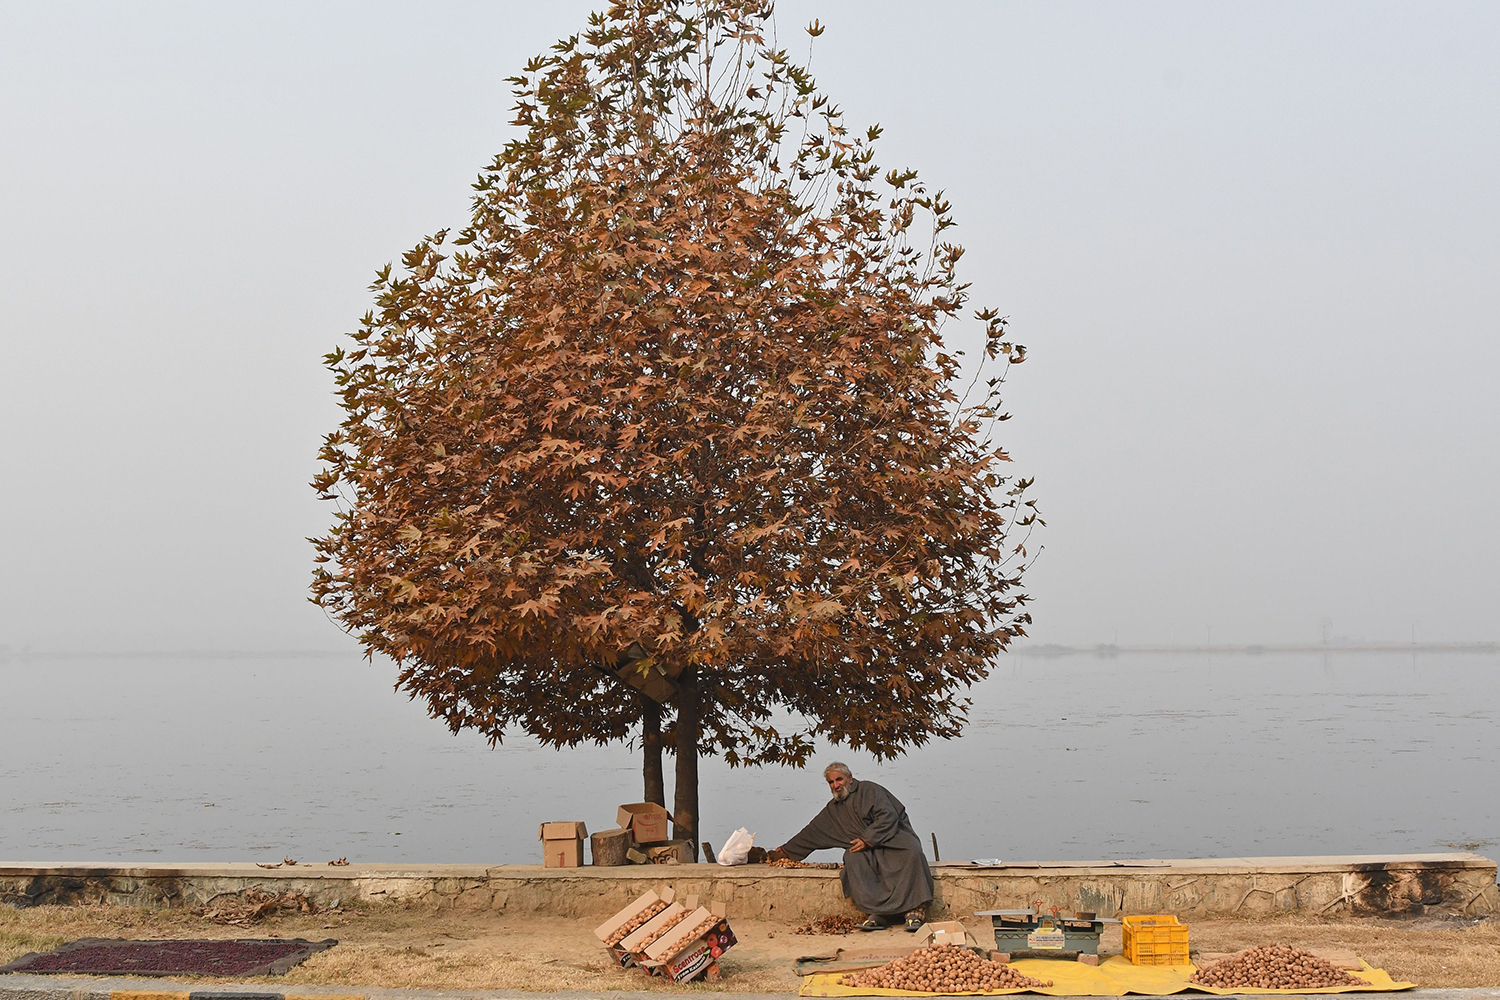 A Kashmiri vendor selling walnuts waits for customers on the banks of Dal Lake in Srinagar on November 8, 2017. (Tauseef Mustafa/AFP/Getty Images)